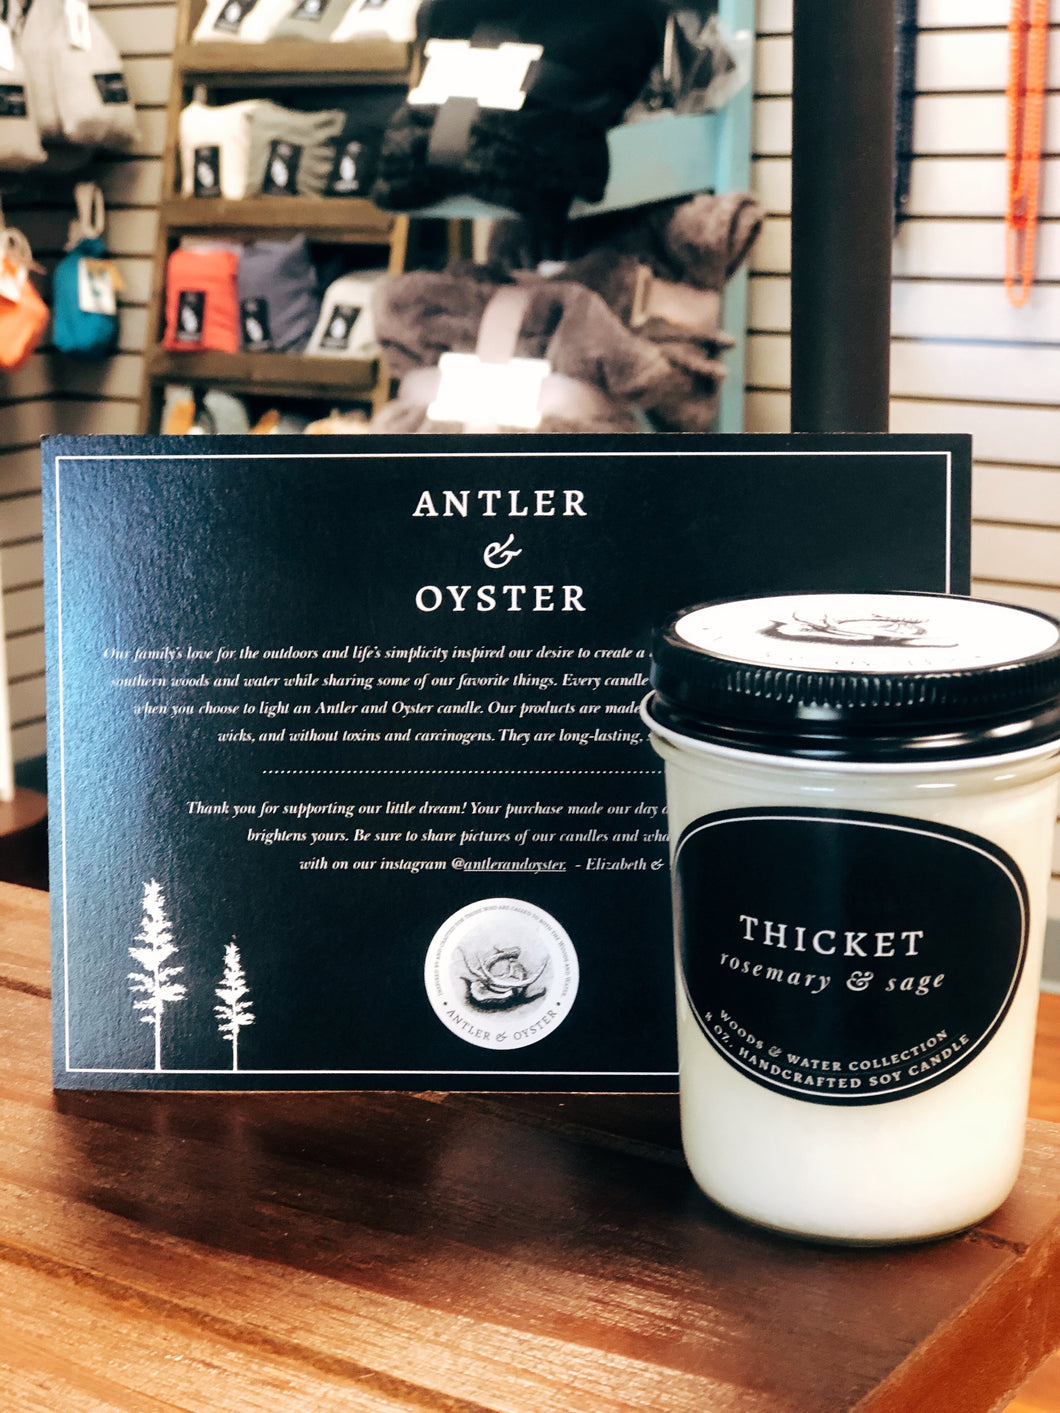 Antler & Oyster—Thicket